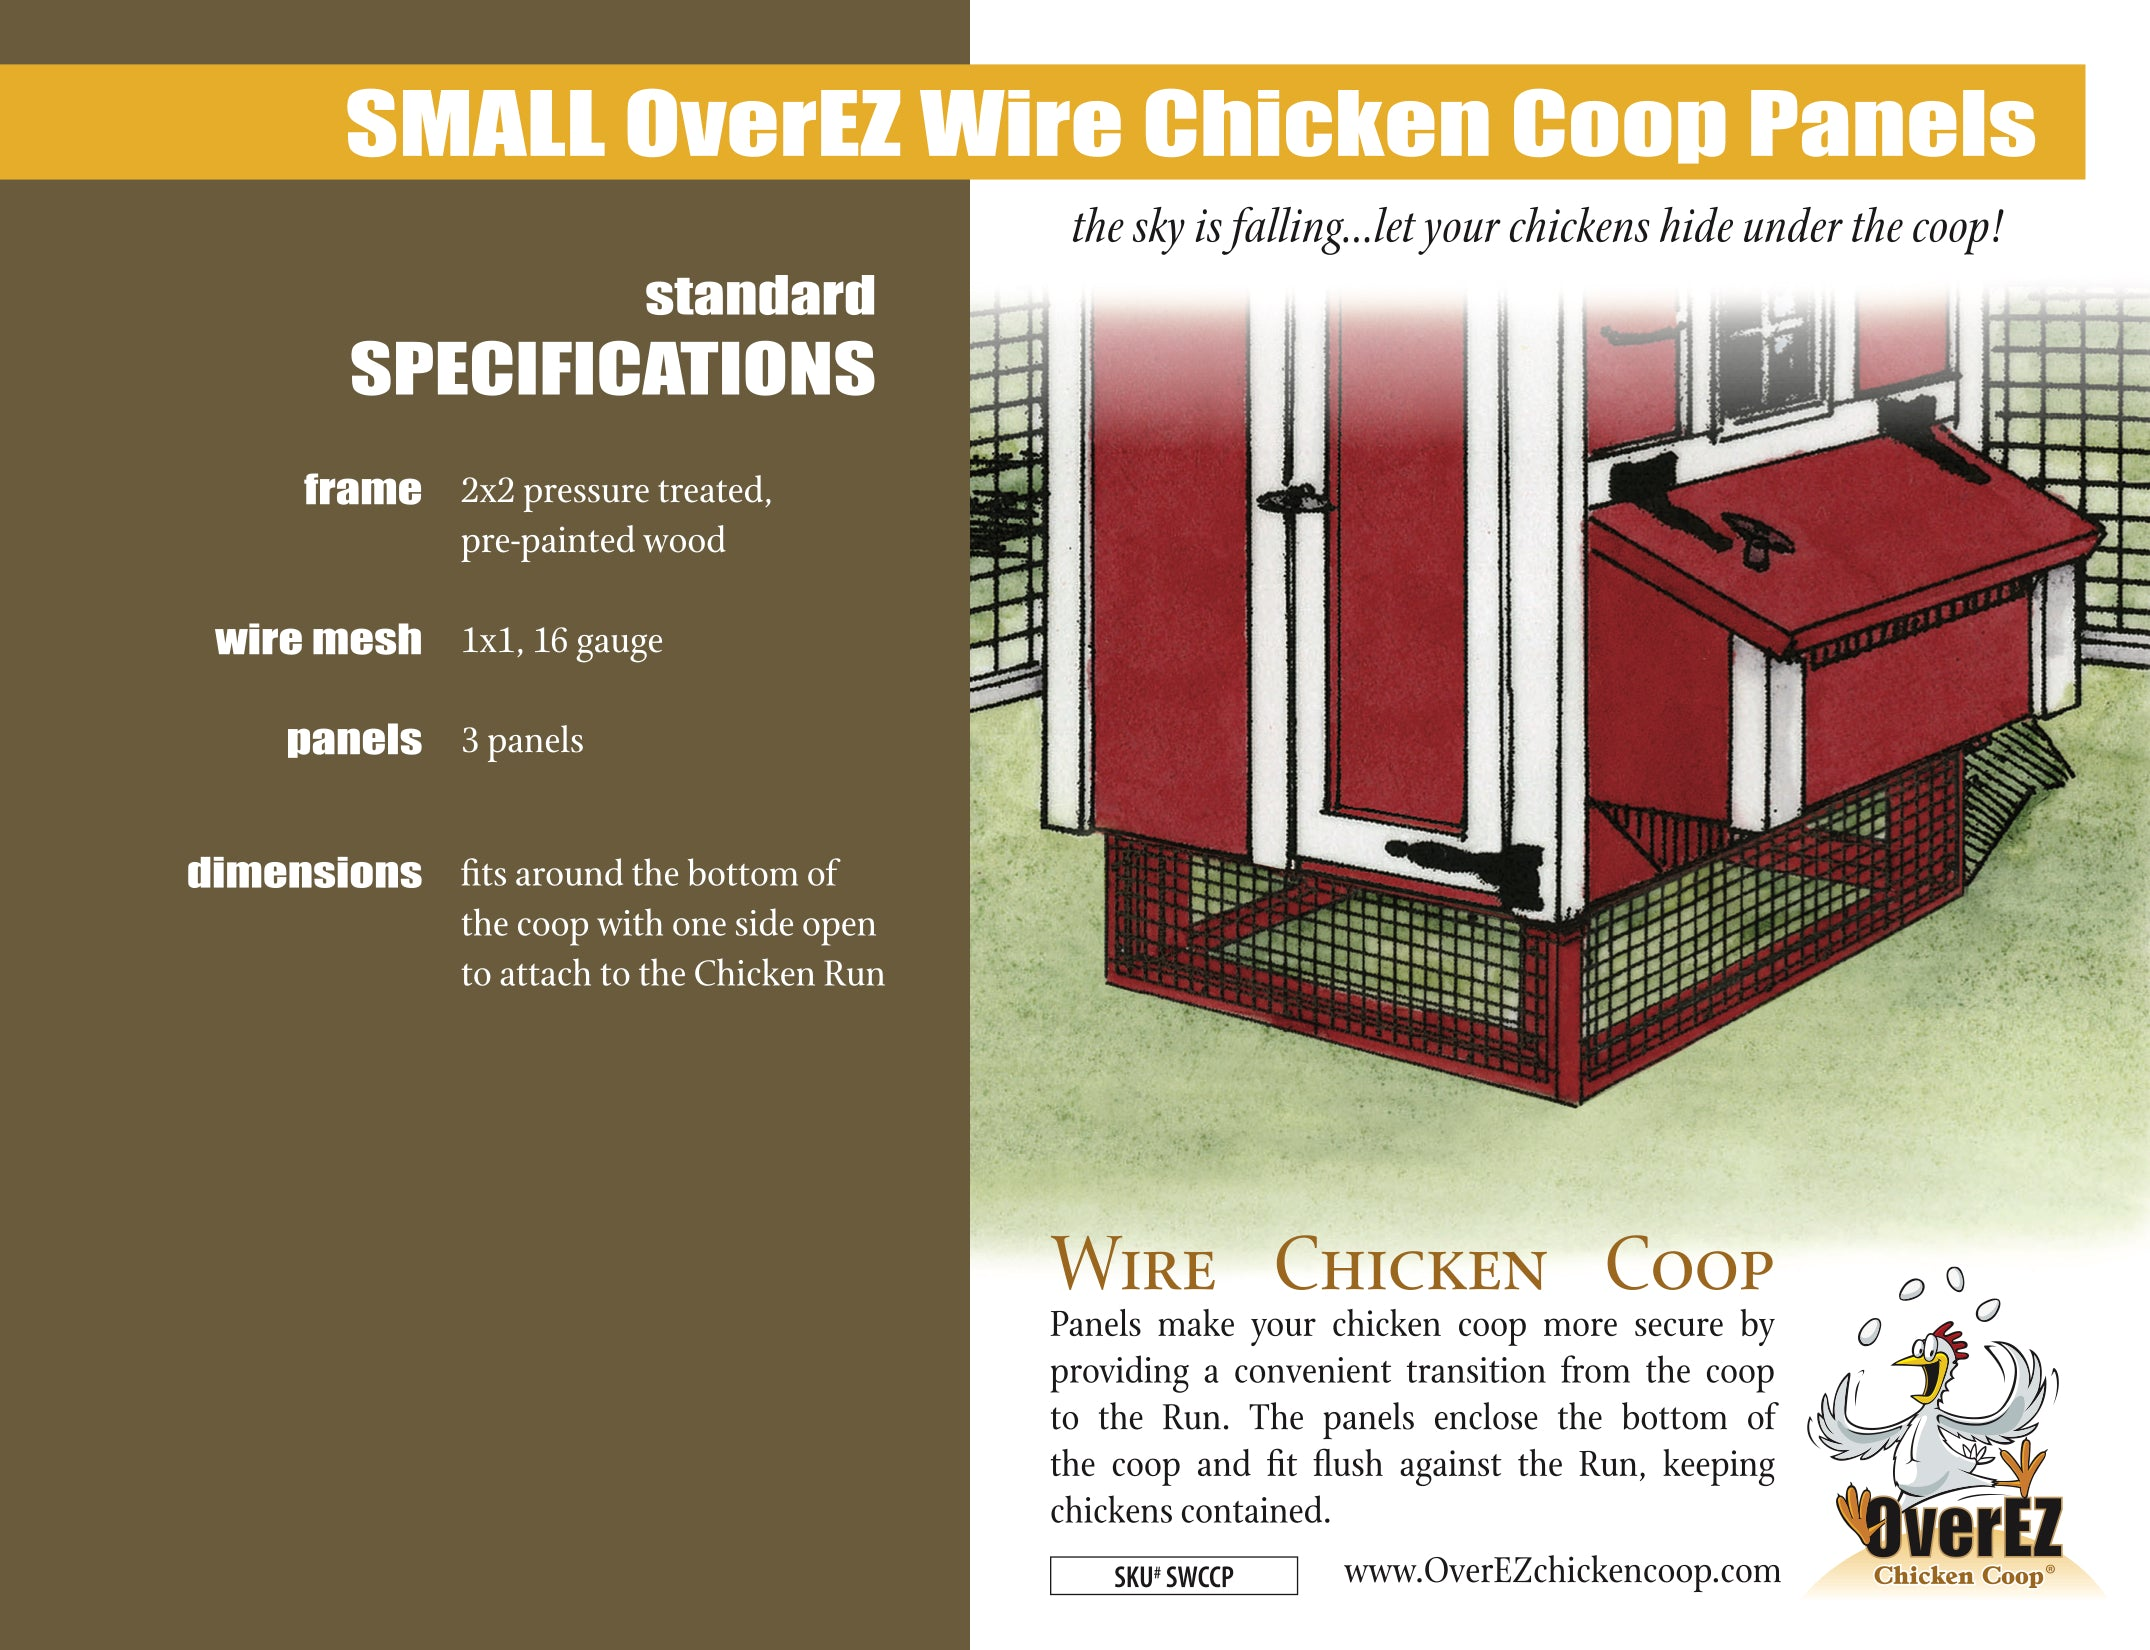 Small OverEZ Wire Chicken Coop Panels Spec Sheet